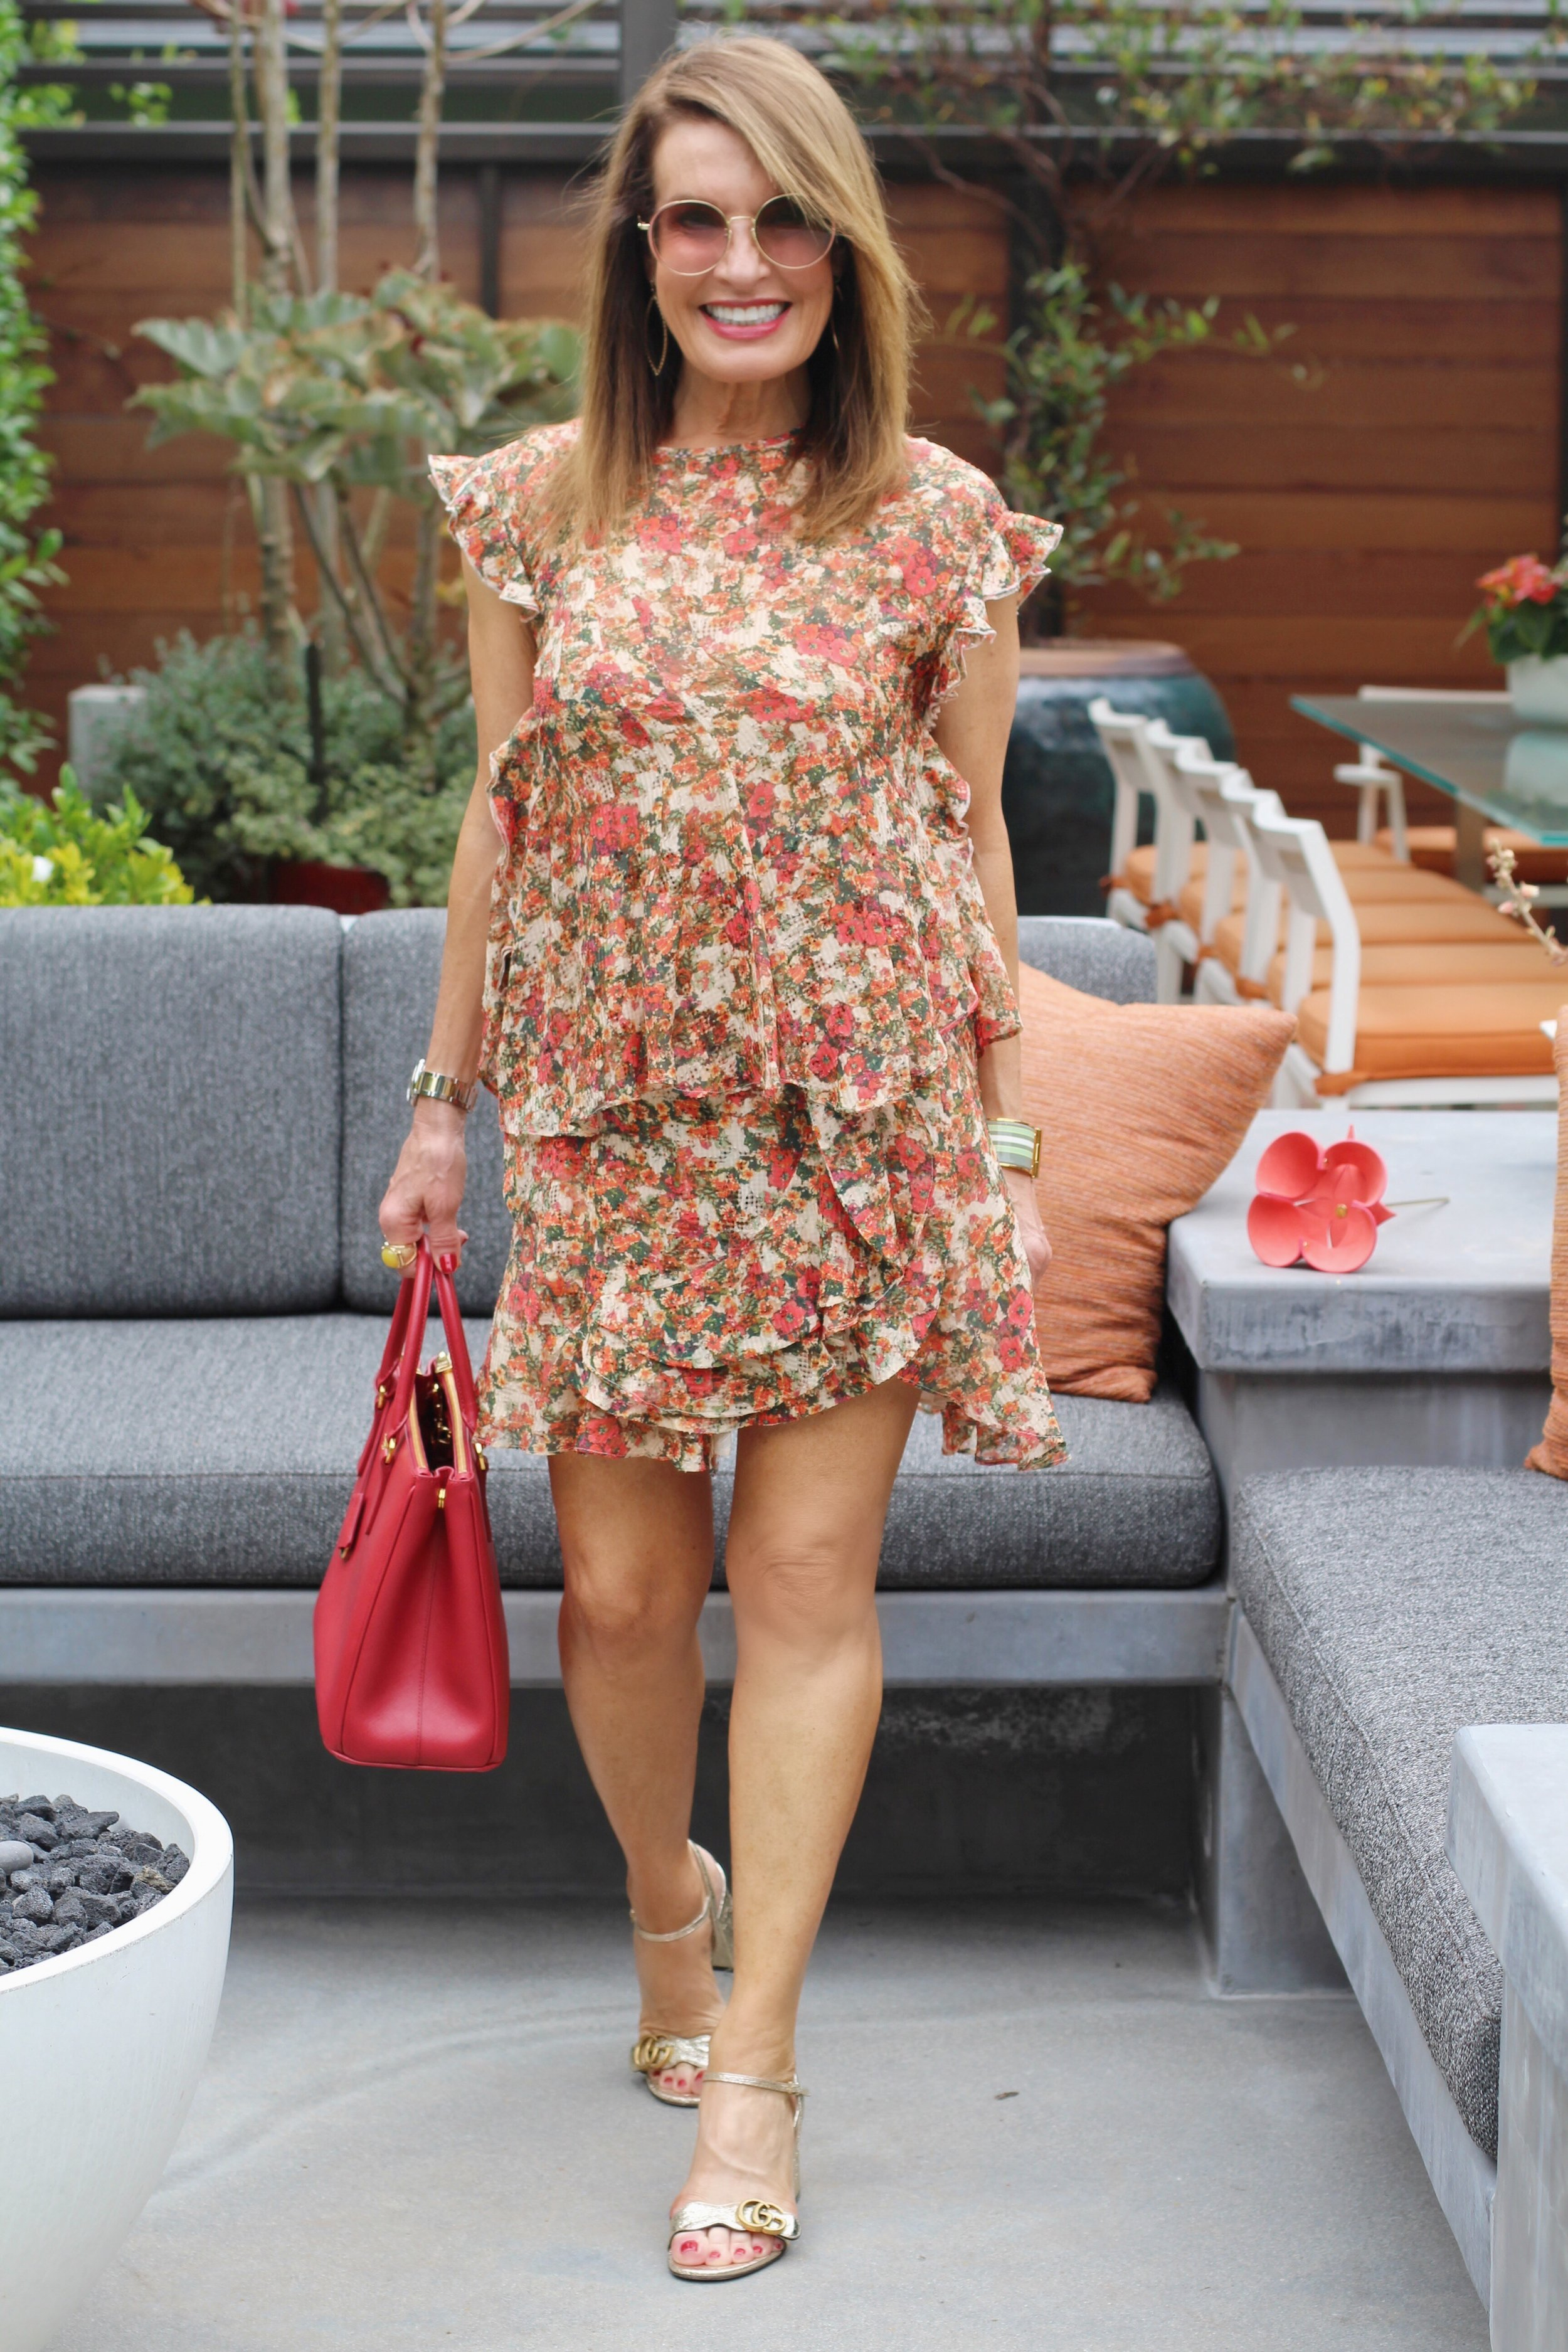 Isabel Marant top and skirt no longer available,    but similar here     ,      Gucci sandals    and    shades   ,    Prada handbag,       similar for much less here,    Hermes cuff,    Jami Lyn earrings   ,     Louis Vuitton leather flower   .